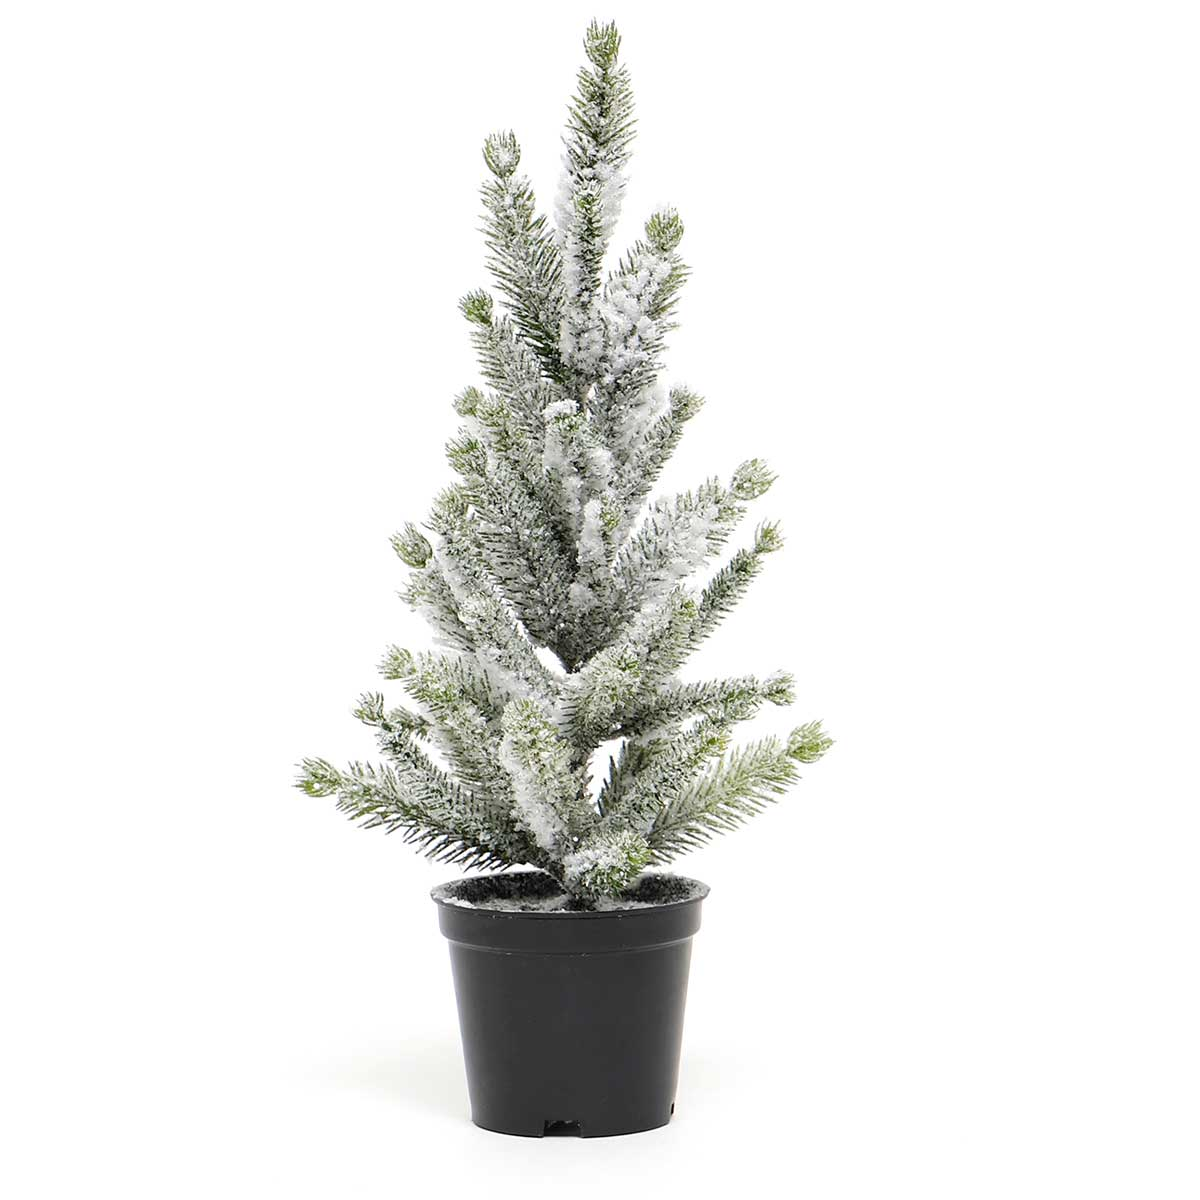 FIR TREE WITH SNOW IN BLACK POT